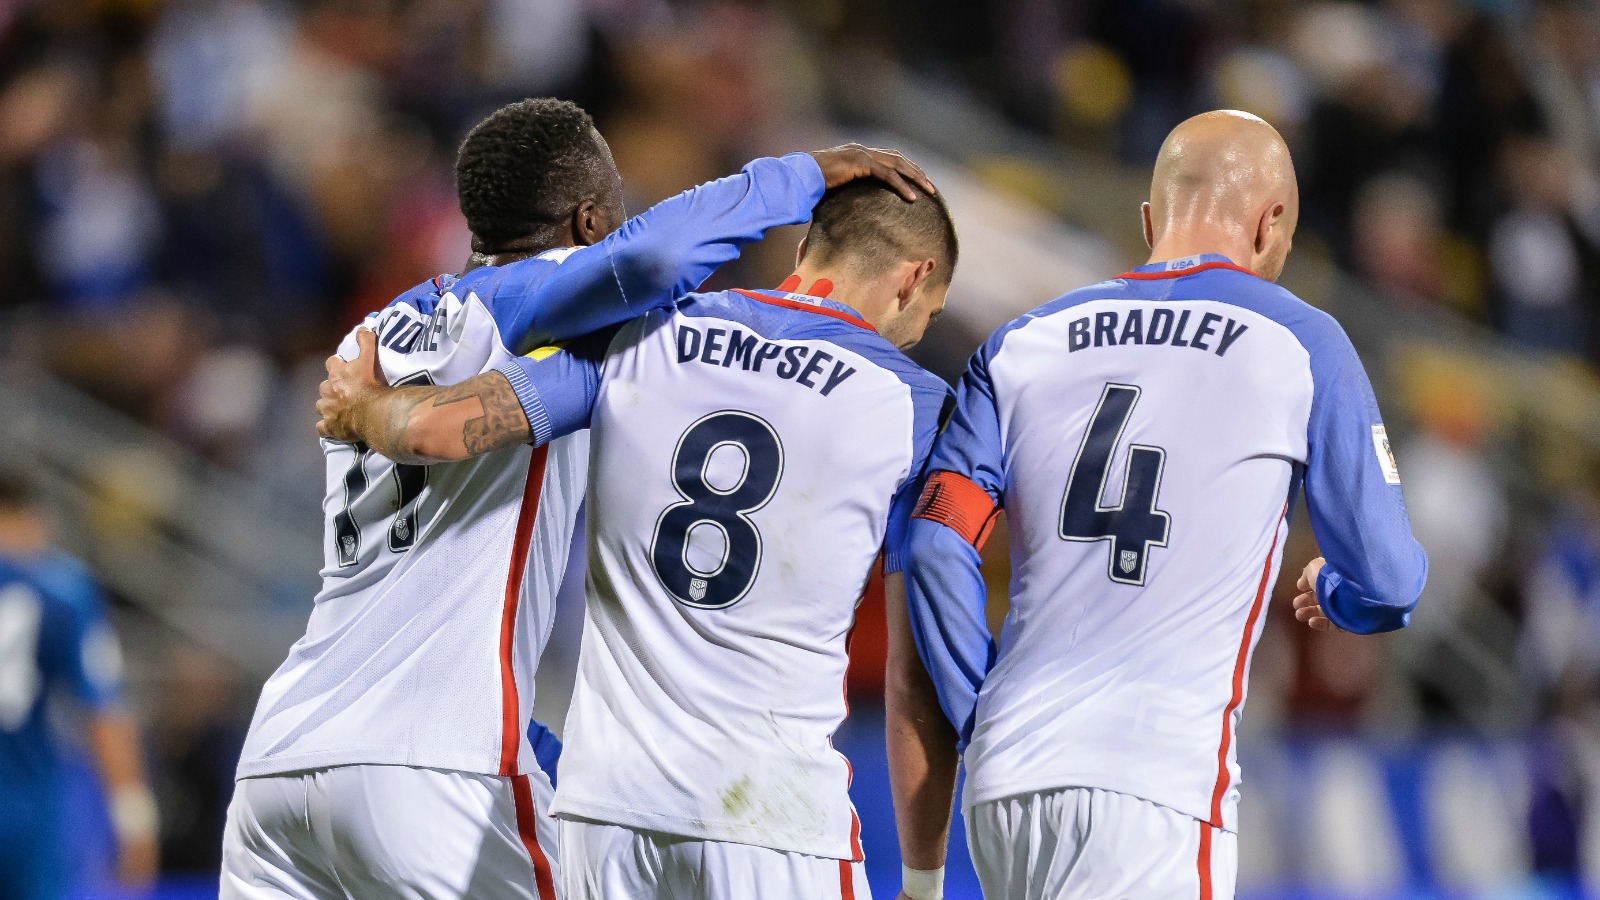 U.S. Soccer announces finalists for 2016 Male Athlete of the Year